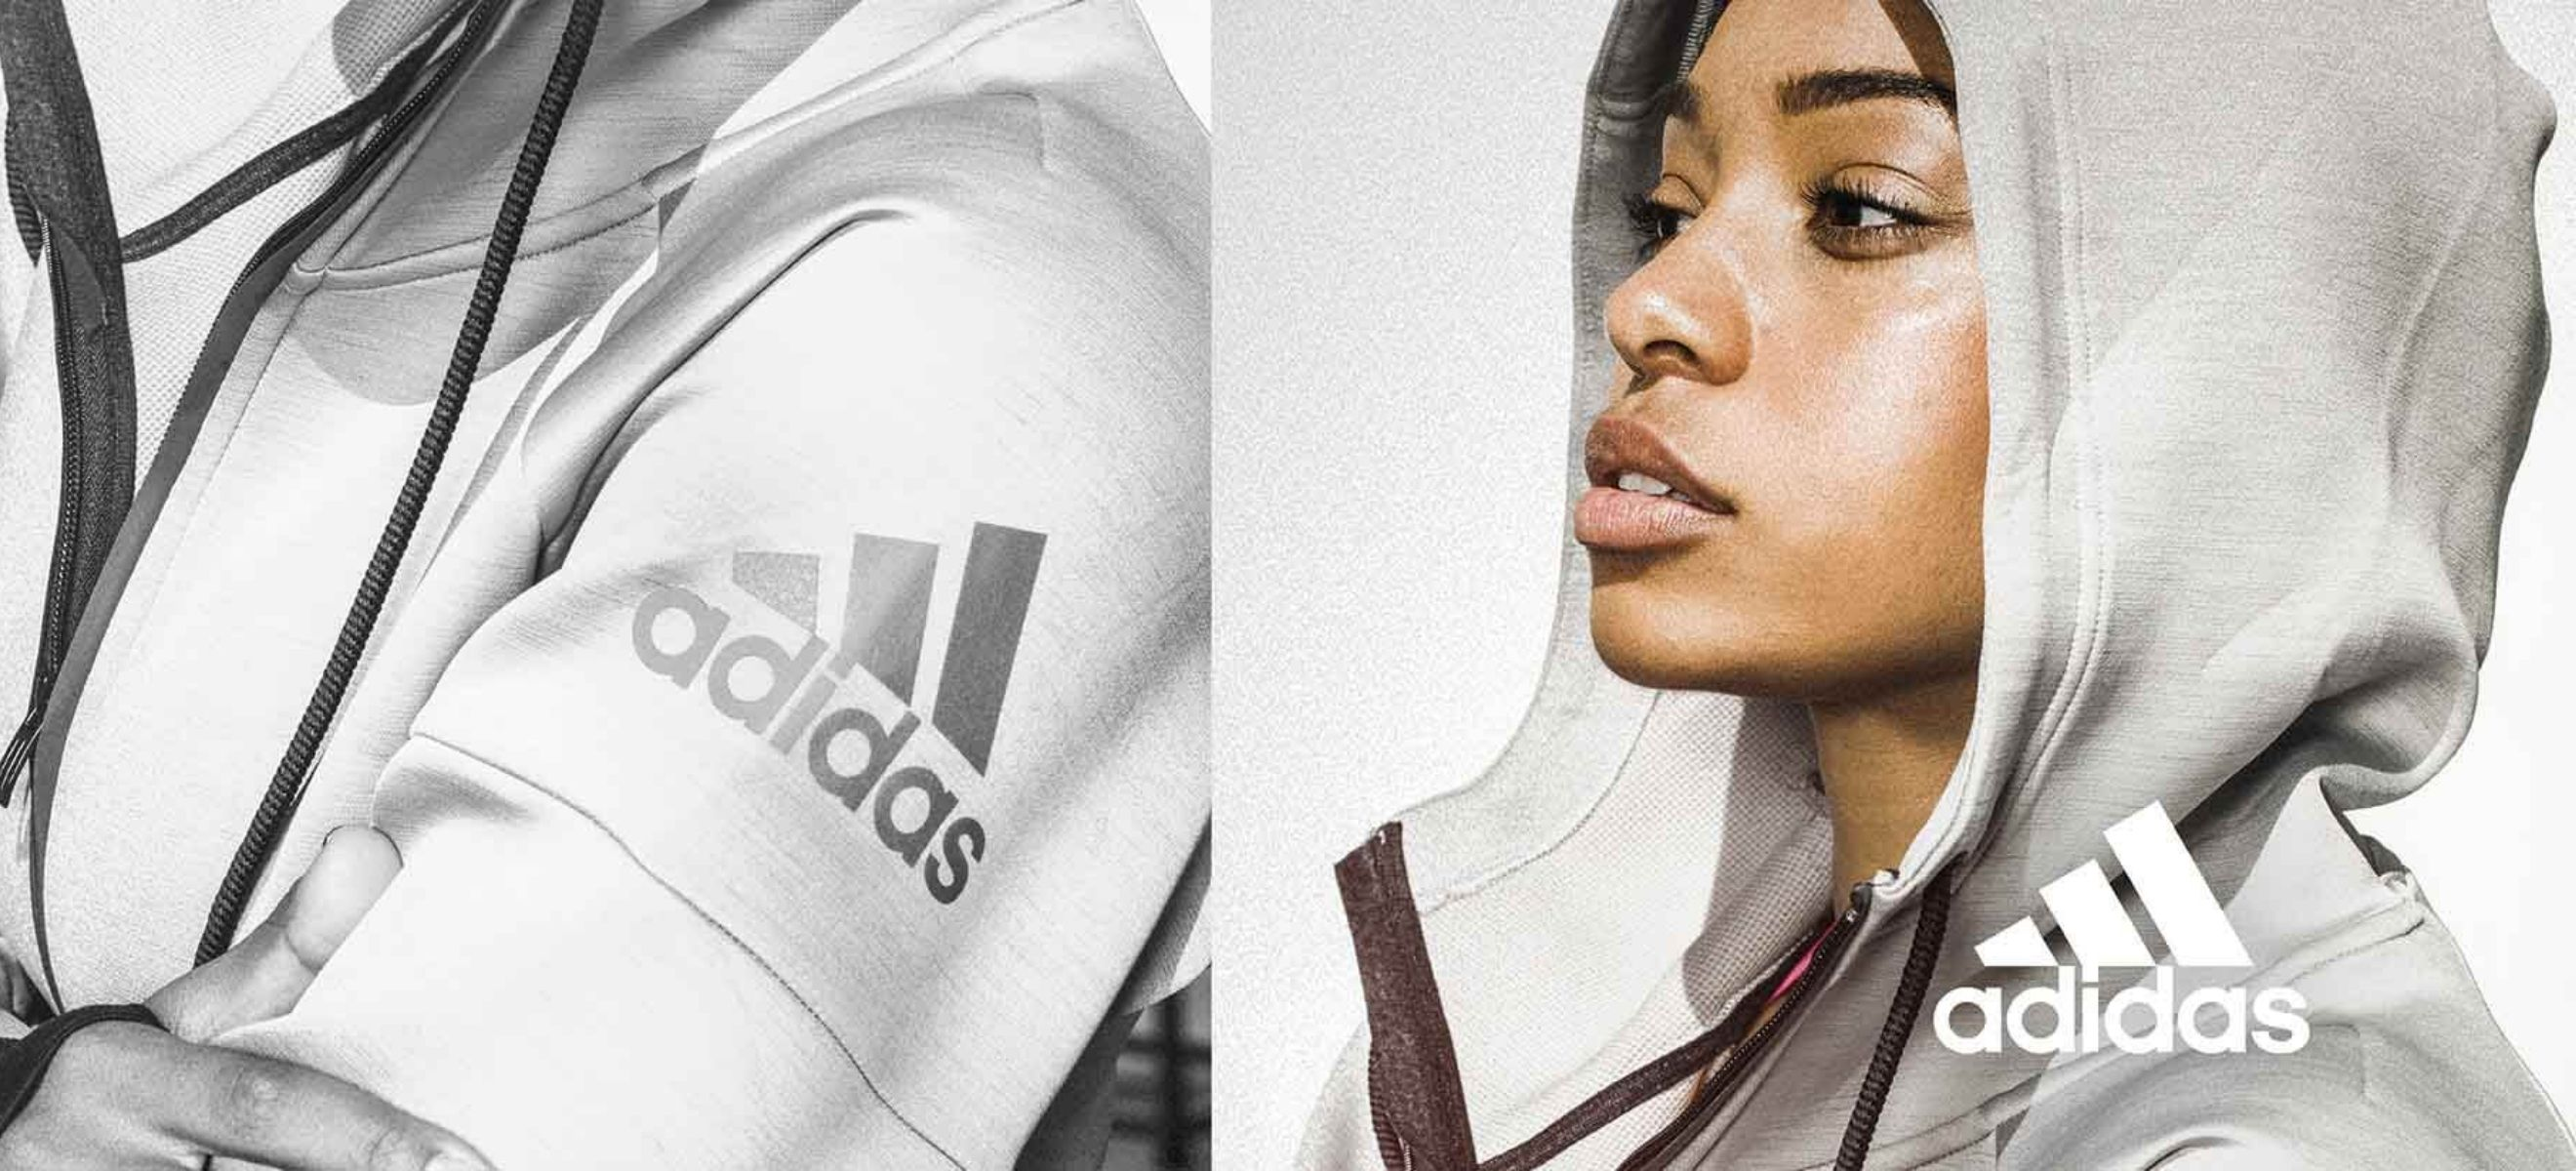 Adidas Collection by SbSport.gr